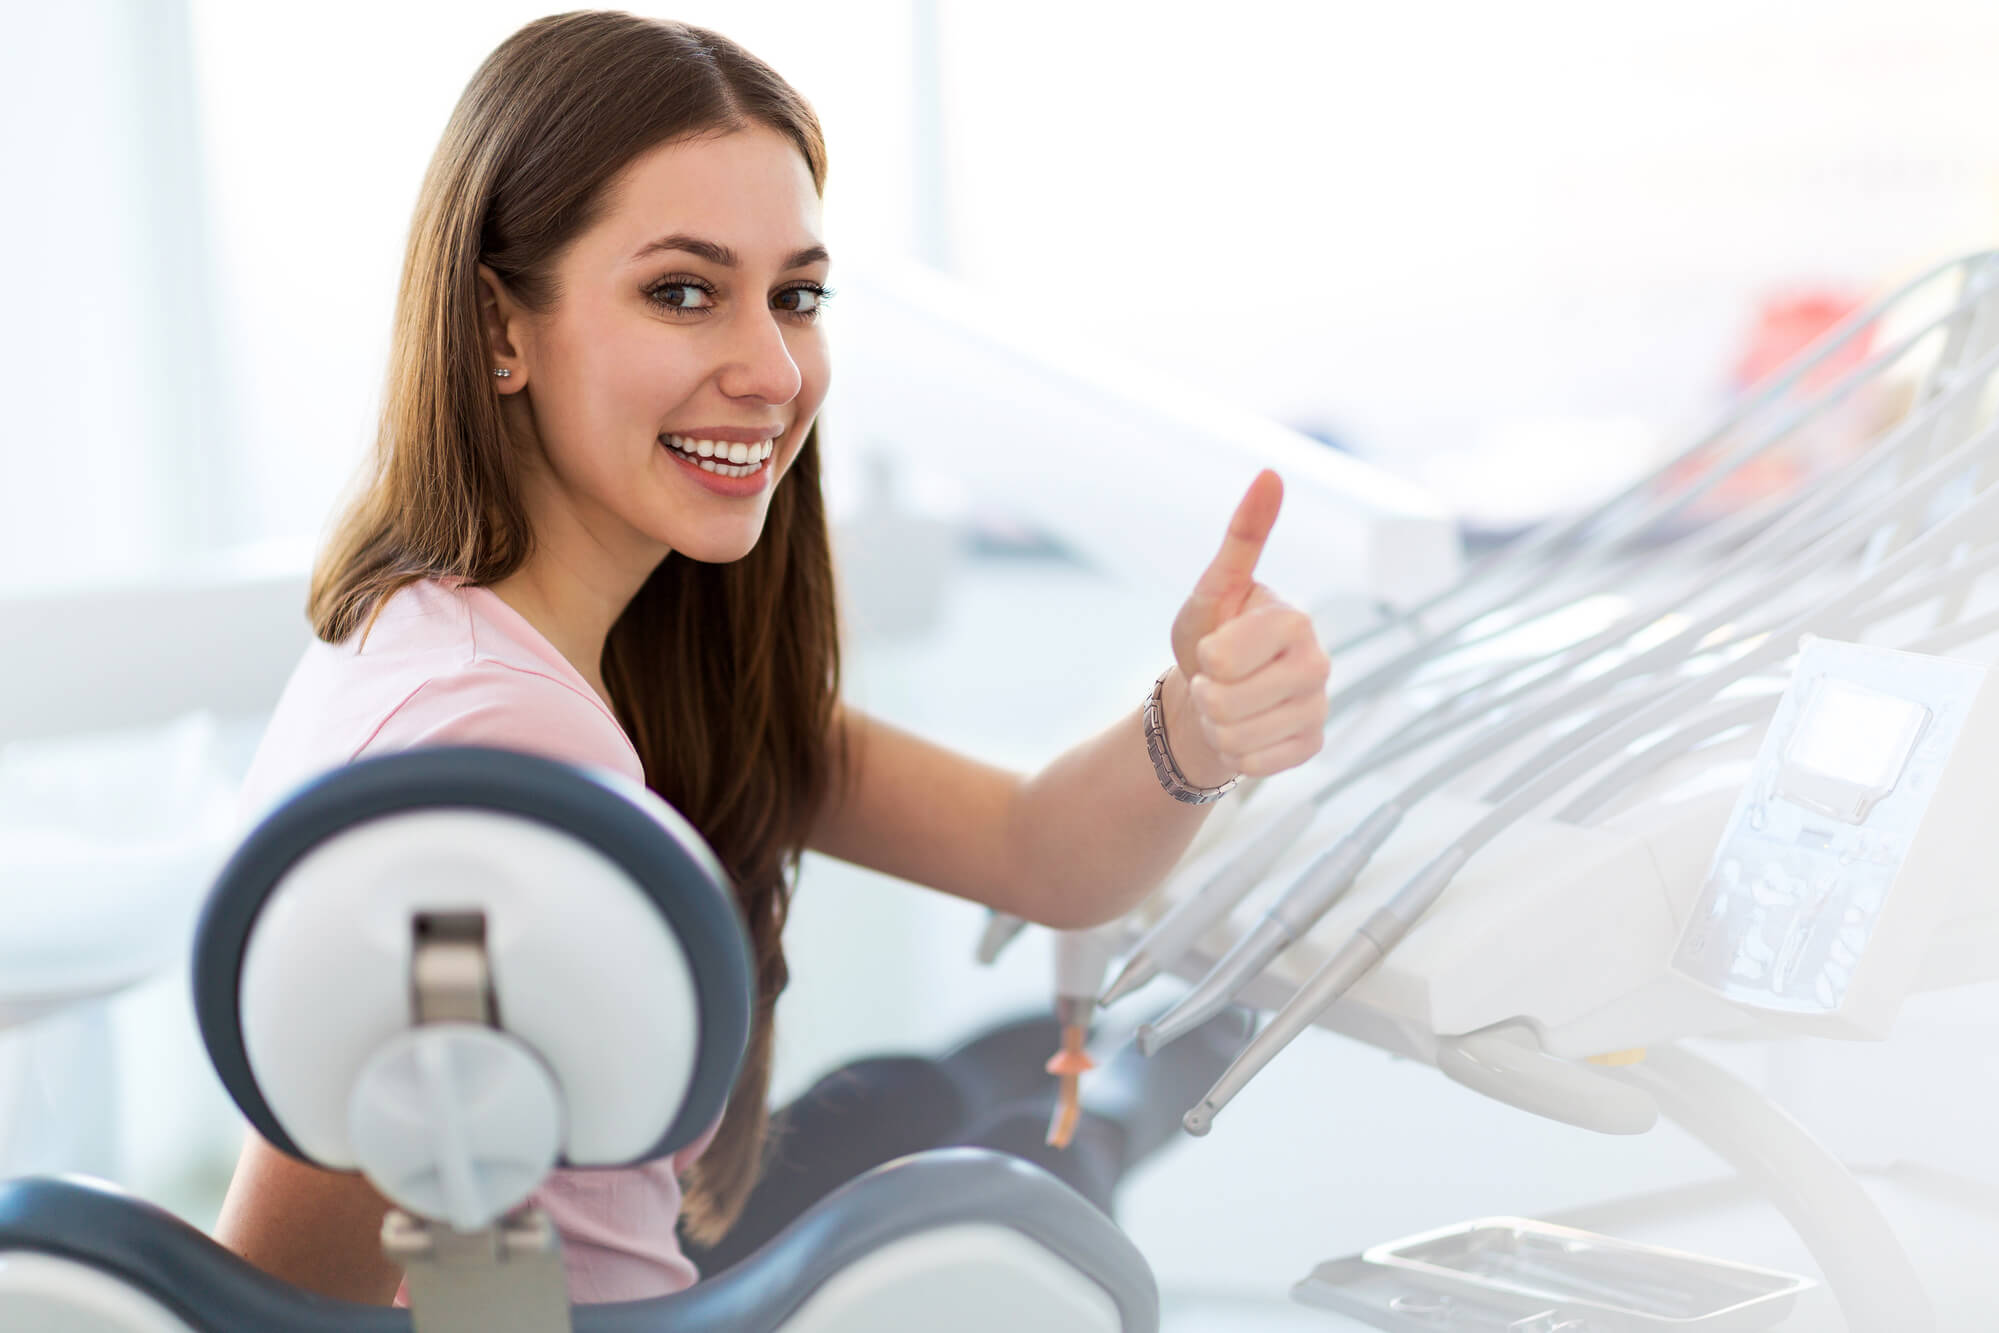 What Are the Major Benefits of Seeing a Holistic Dentist?